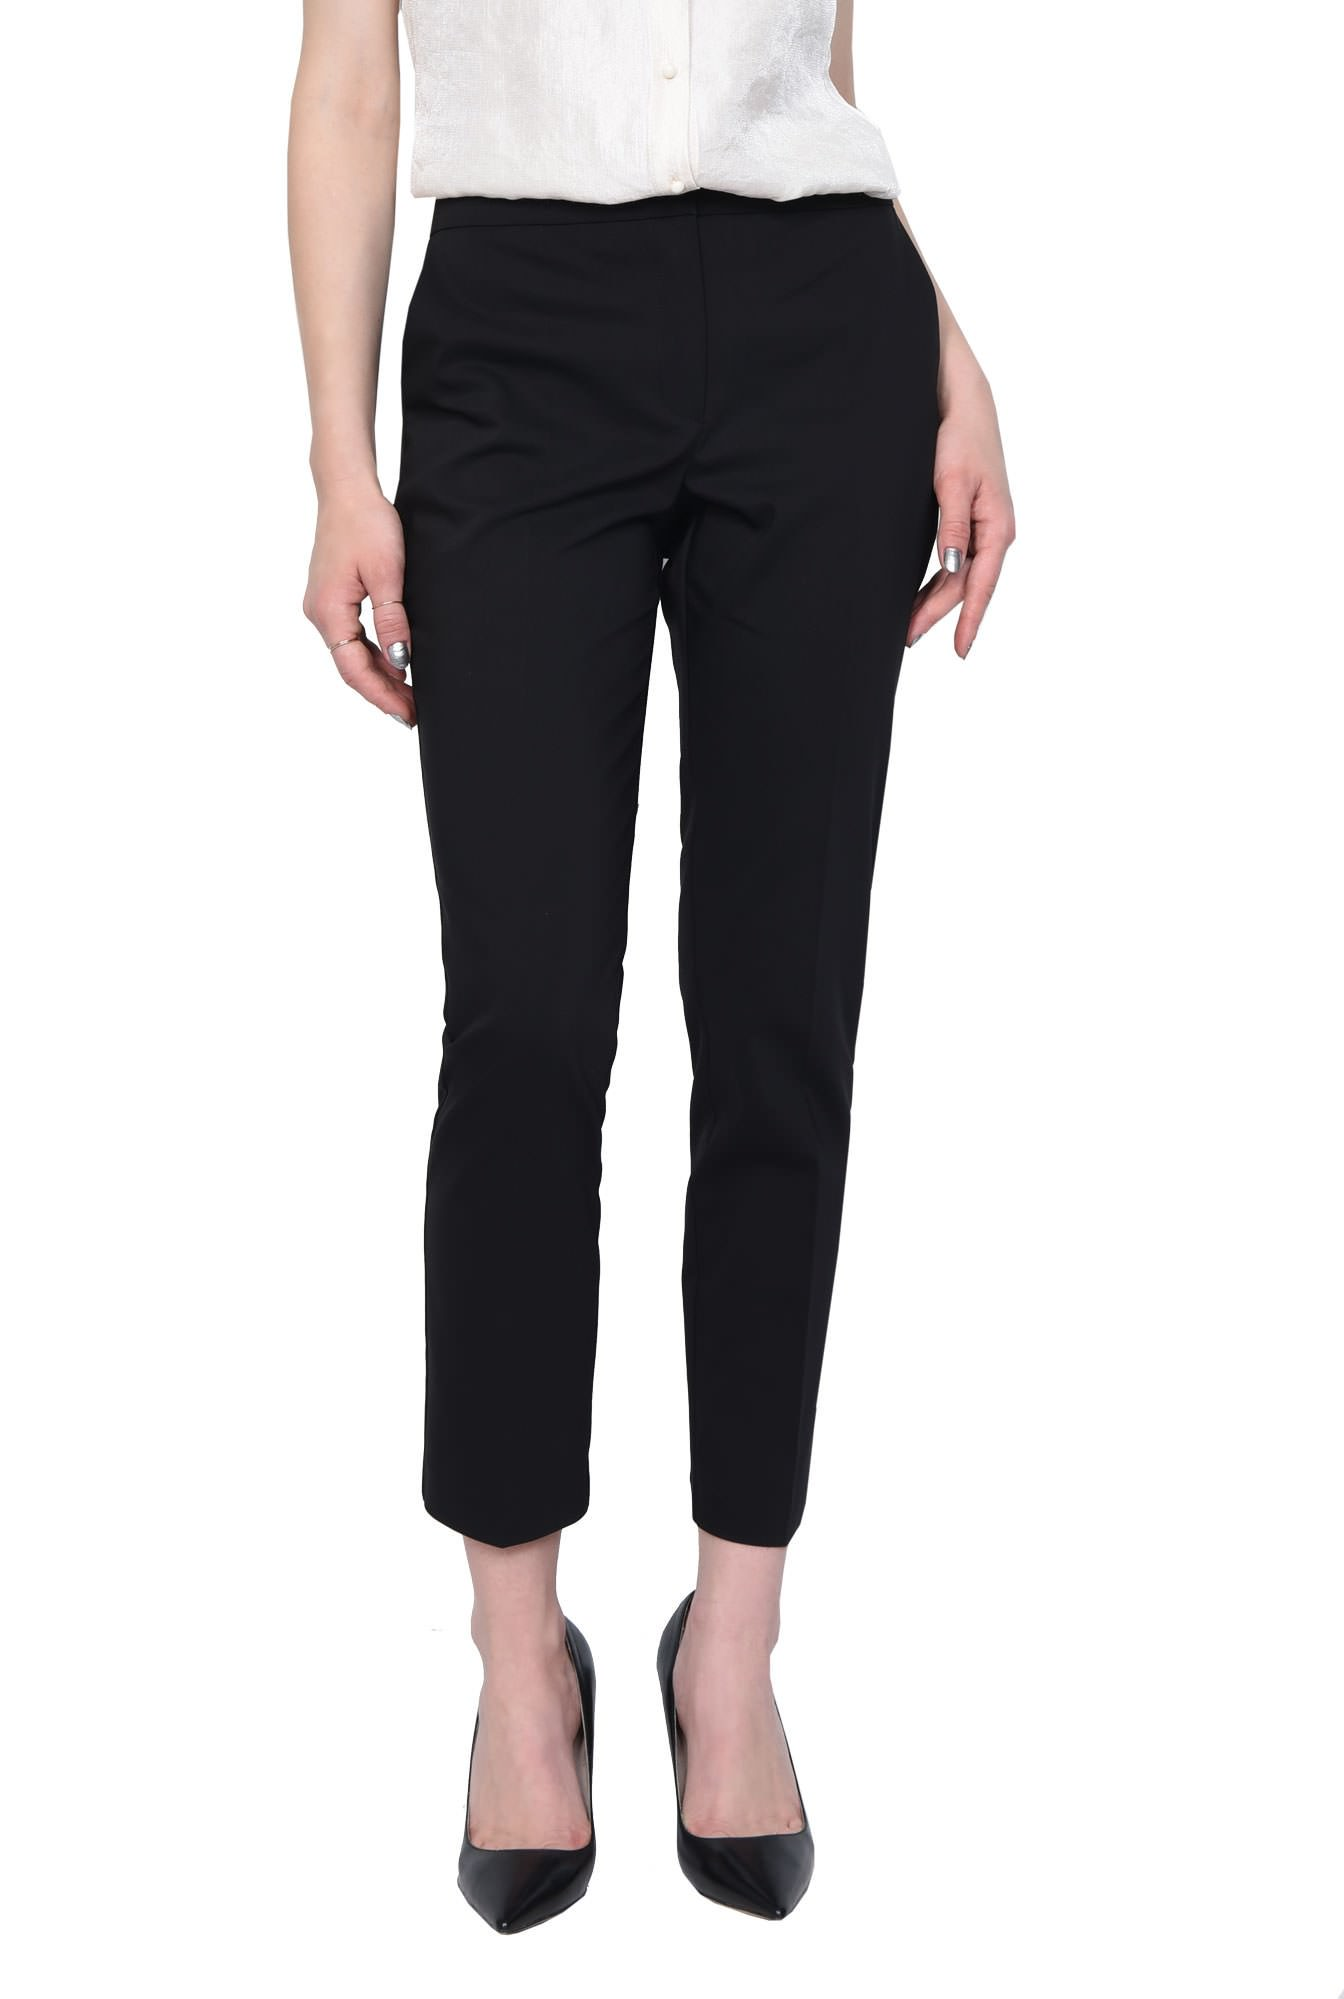 PANTALON OFFICE CONIC PT 144-NEGRU